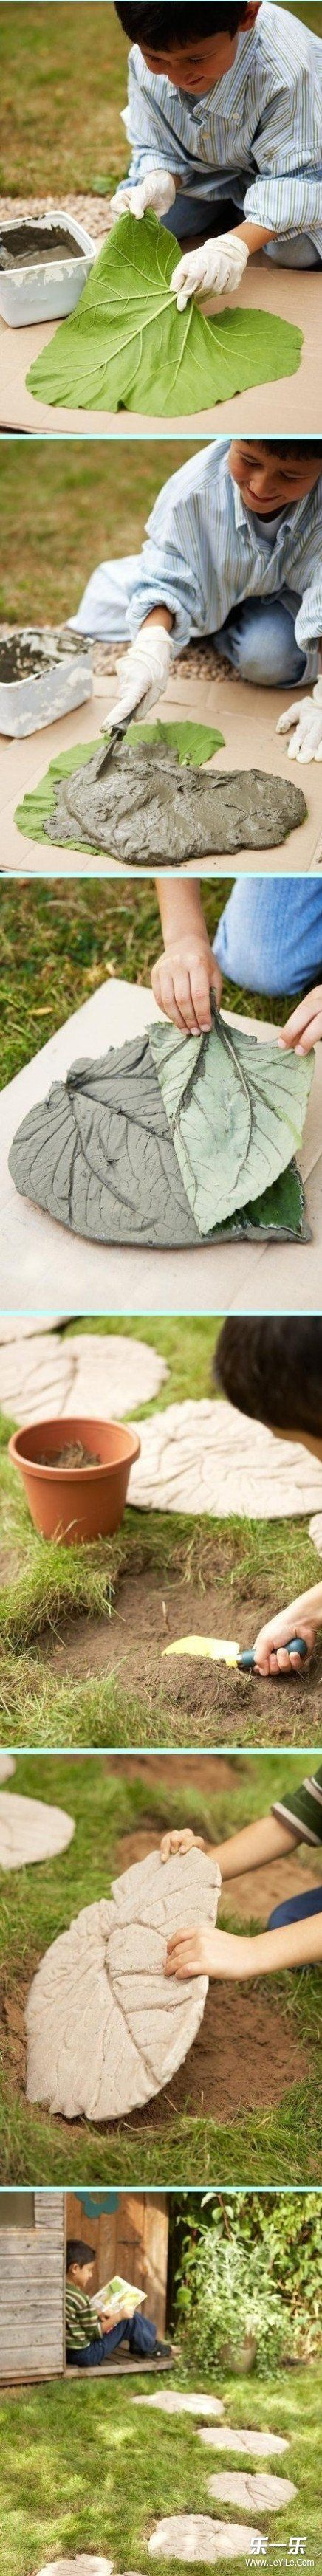 DIY Garden Path of Leaves by leyile.com from http://6let.ru/44-delaem-dorozhku-iz-listev.html: Lovely! #DIY #Garden_Path #Leaves